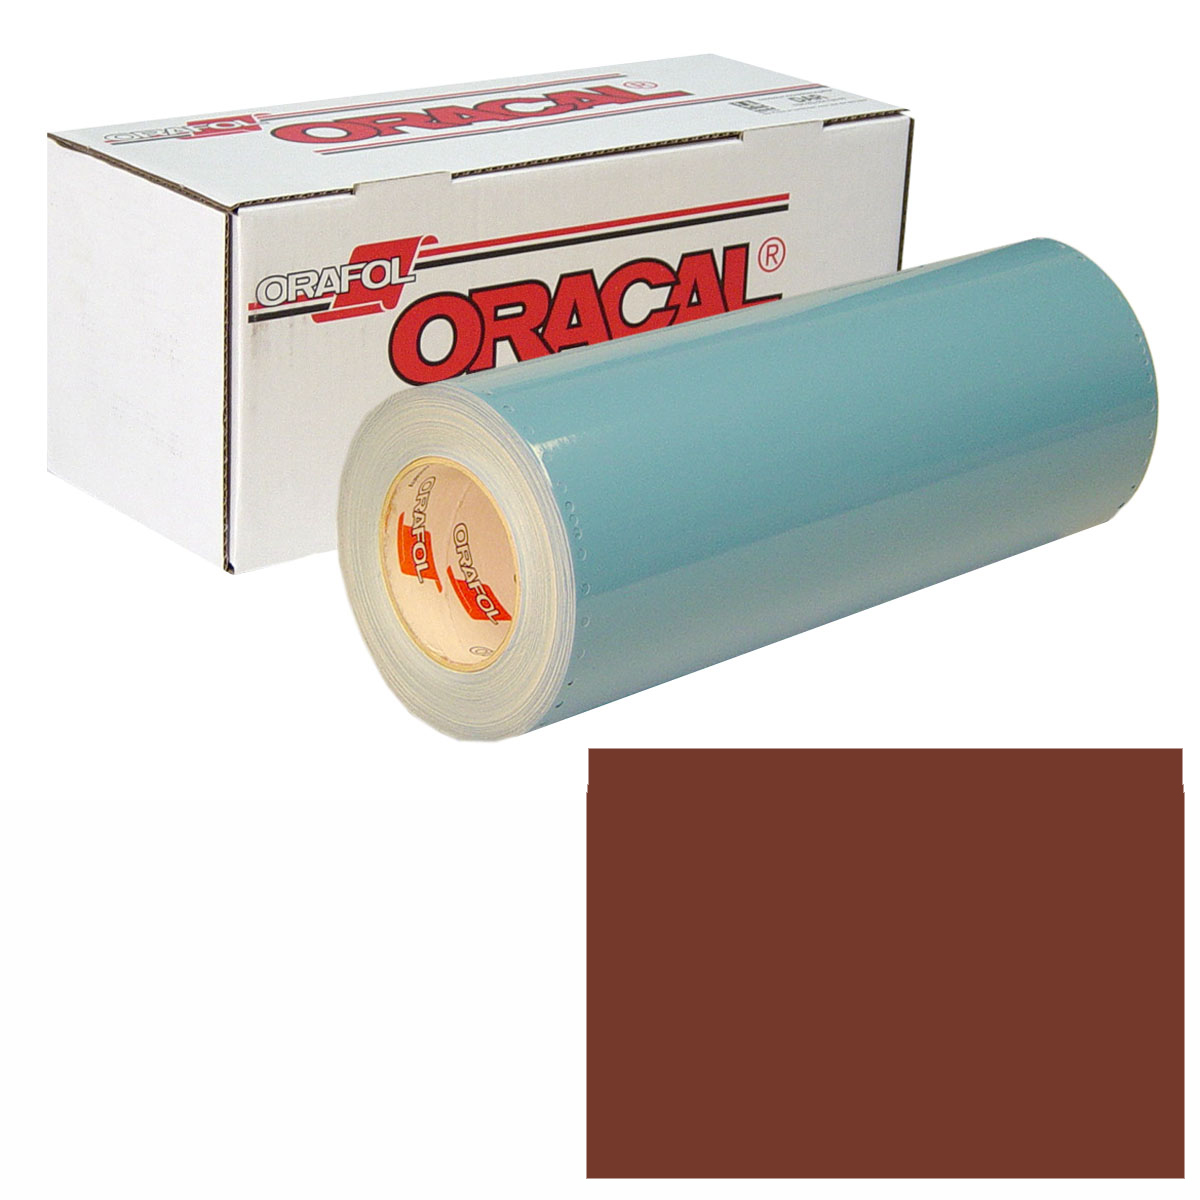 ORACAL 951 30In X 50Yd 079 Red Brown